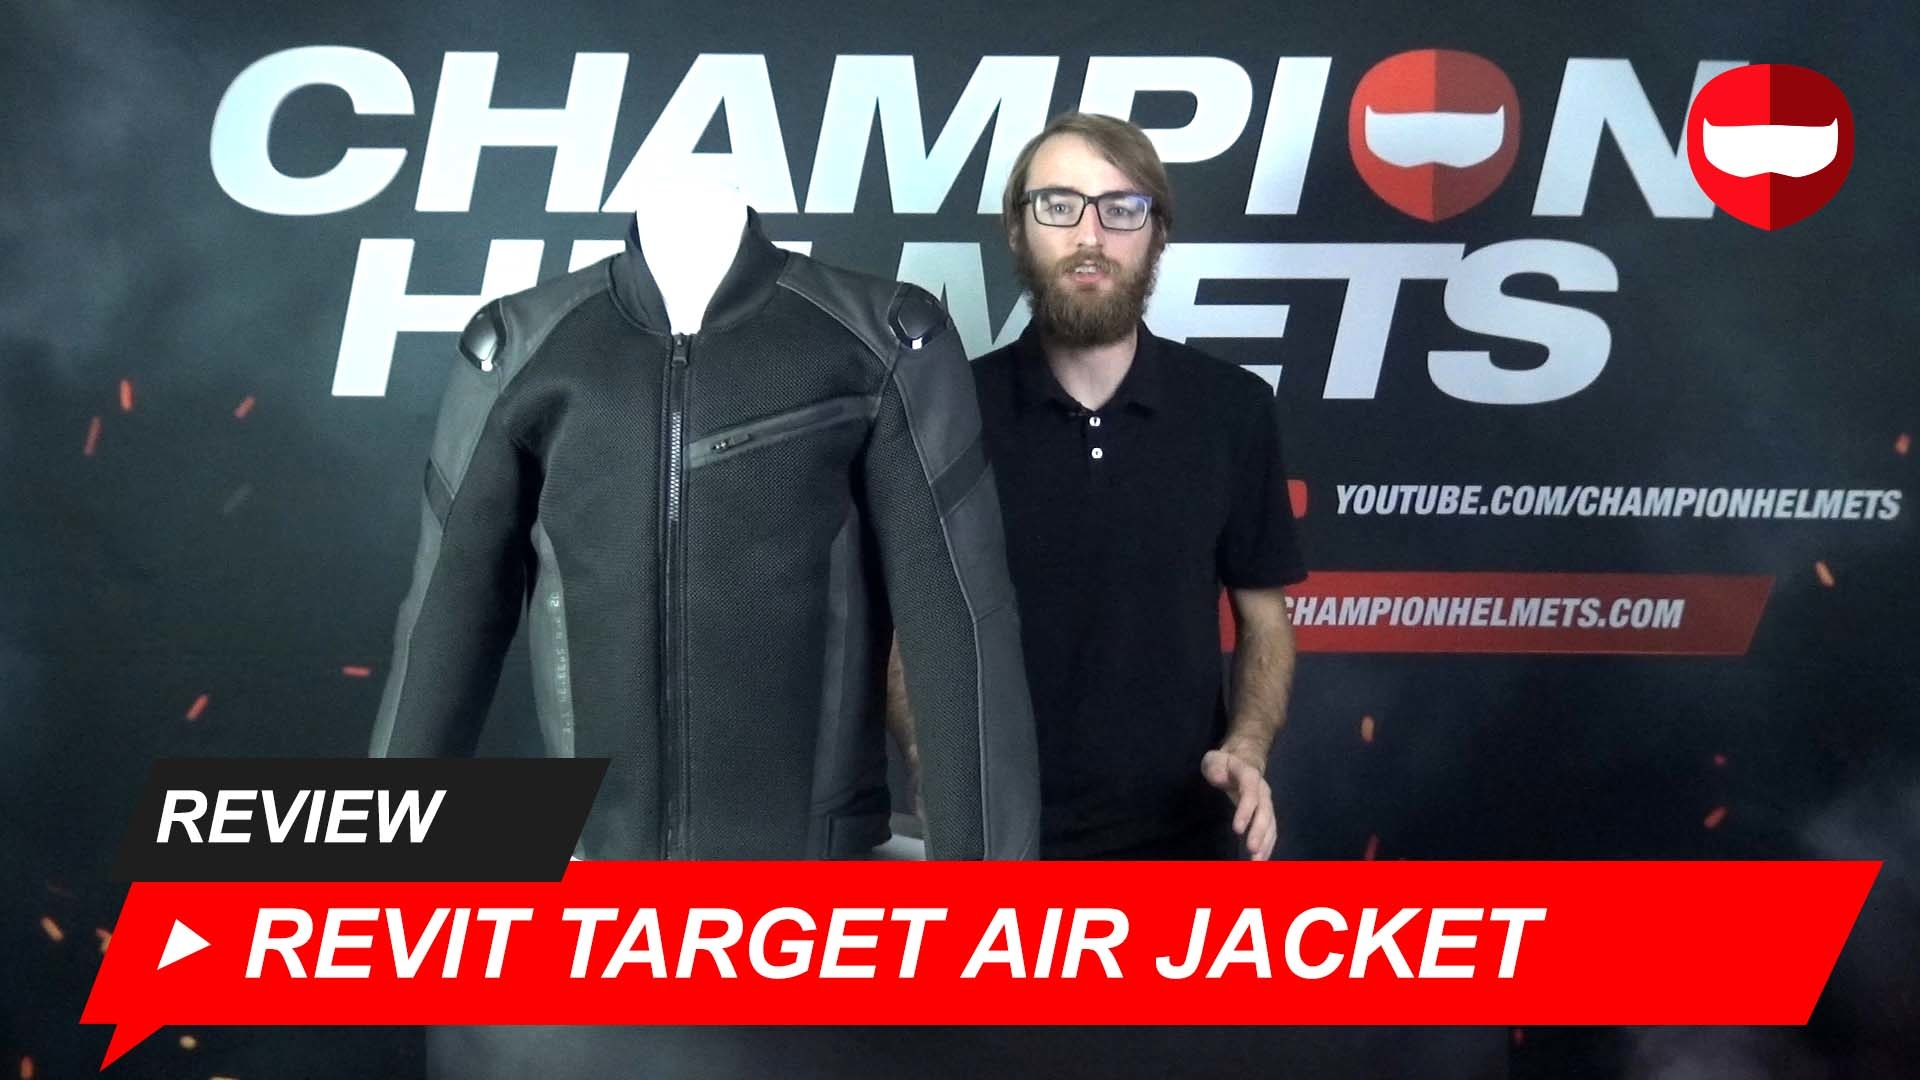 Revit Target Air Jacket Review and Video